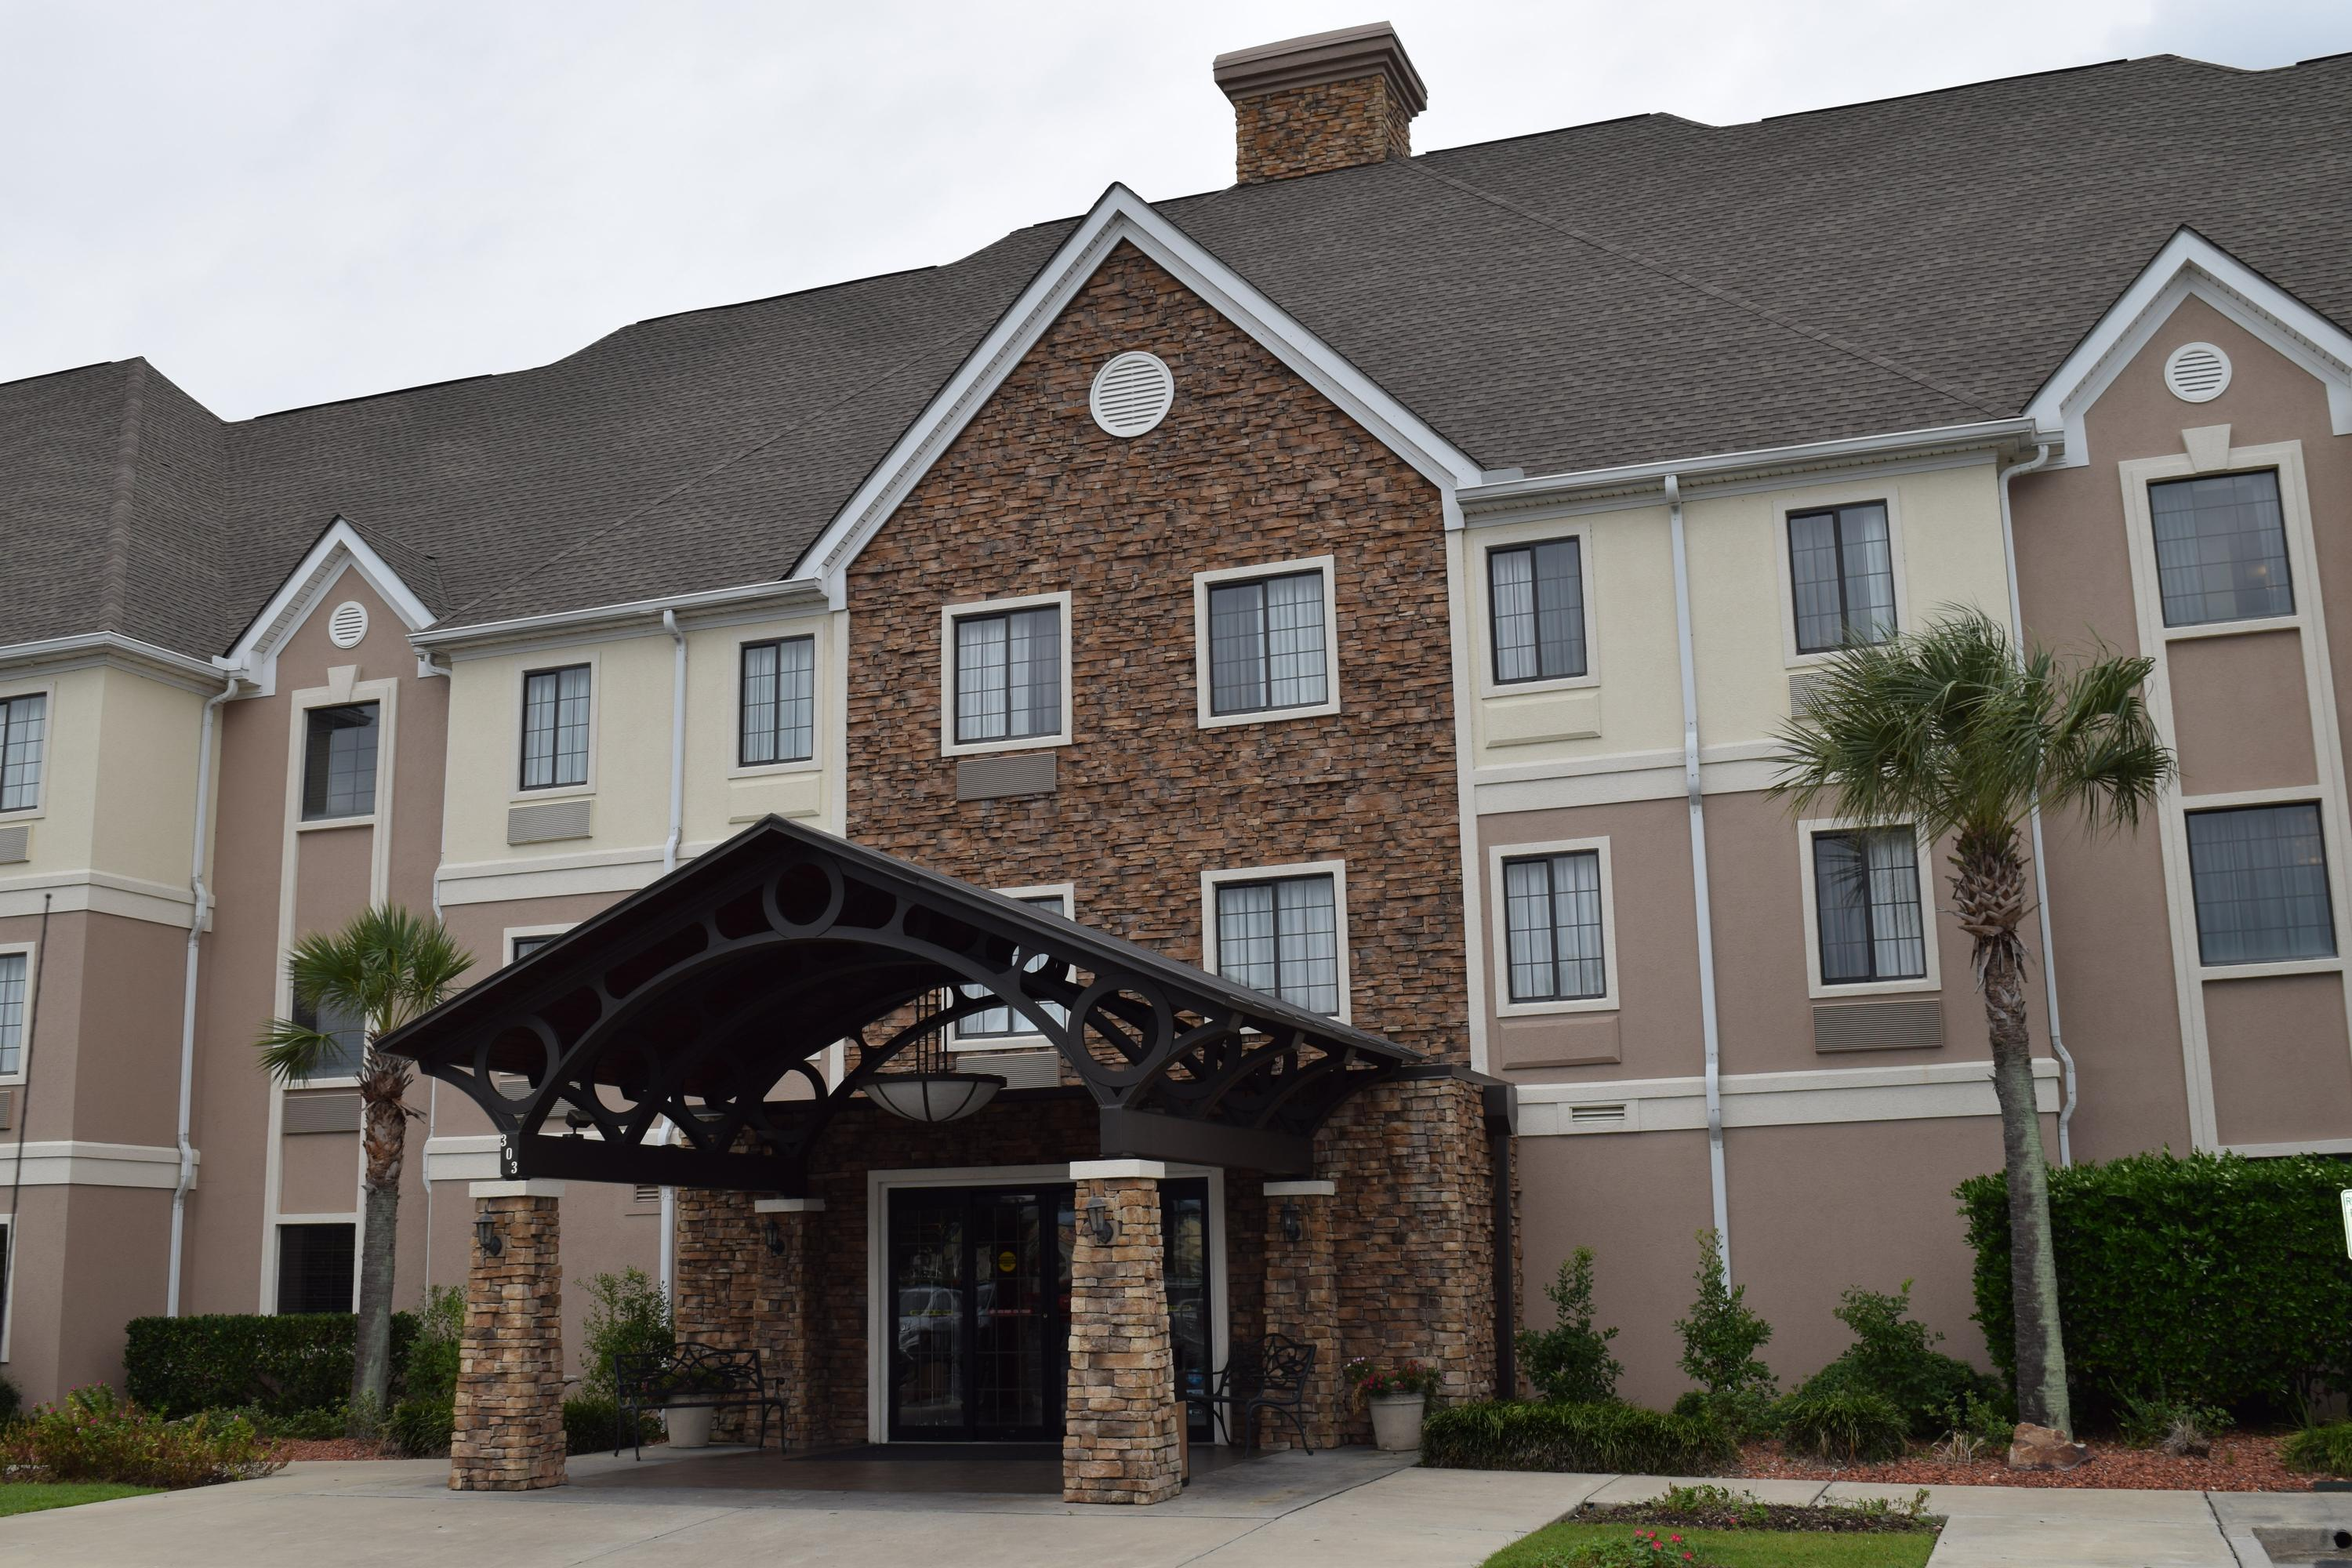 Staybridge Suites Myrtle Beach - West